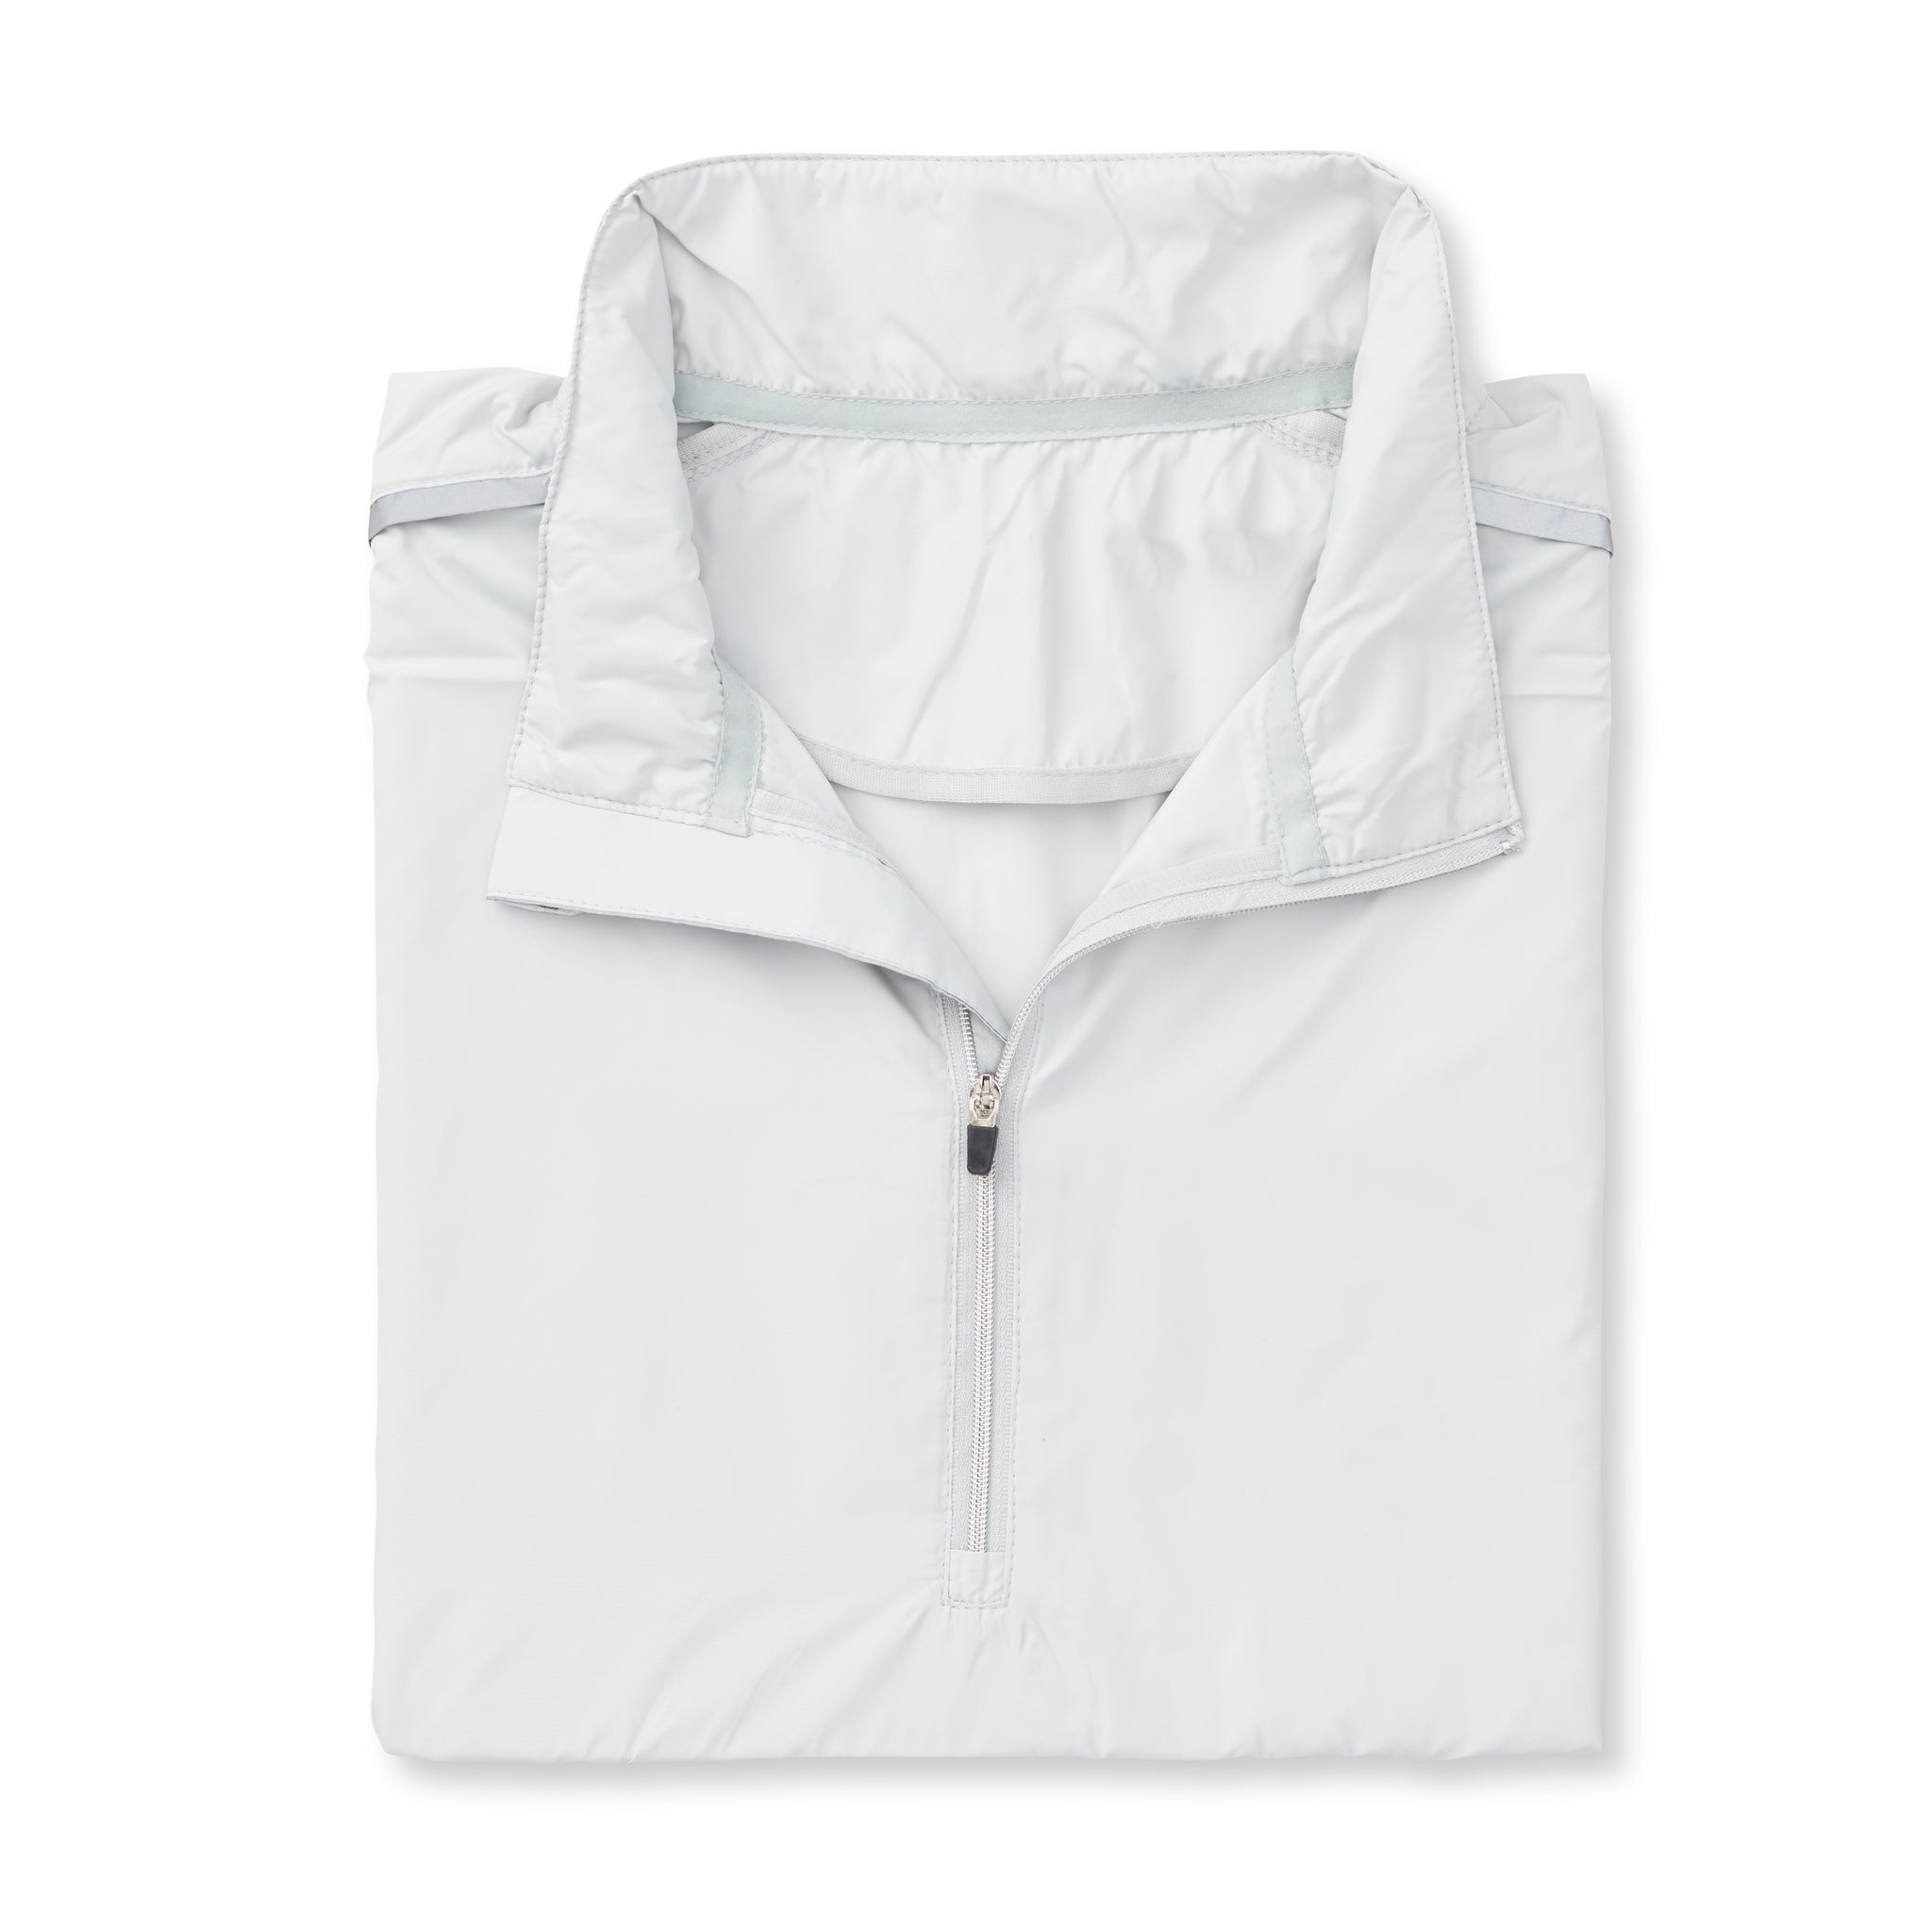 TEC WINDWEAR Half Zip Jacket - Cloud